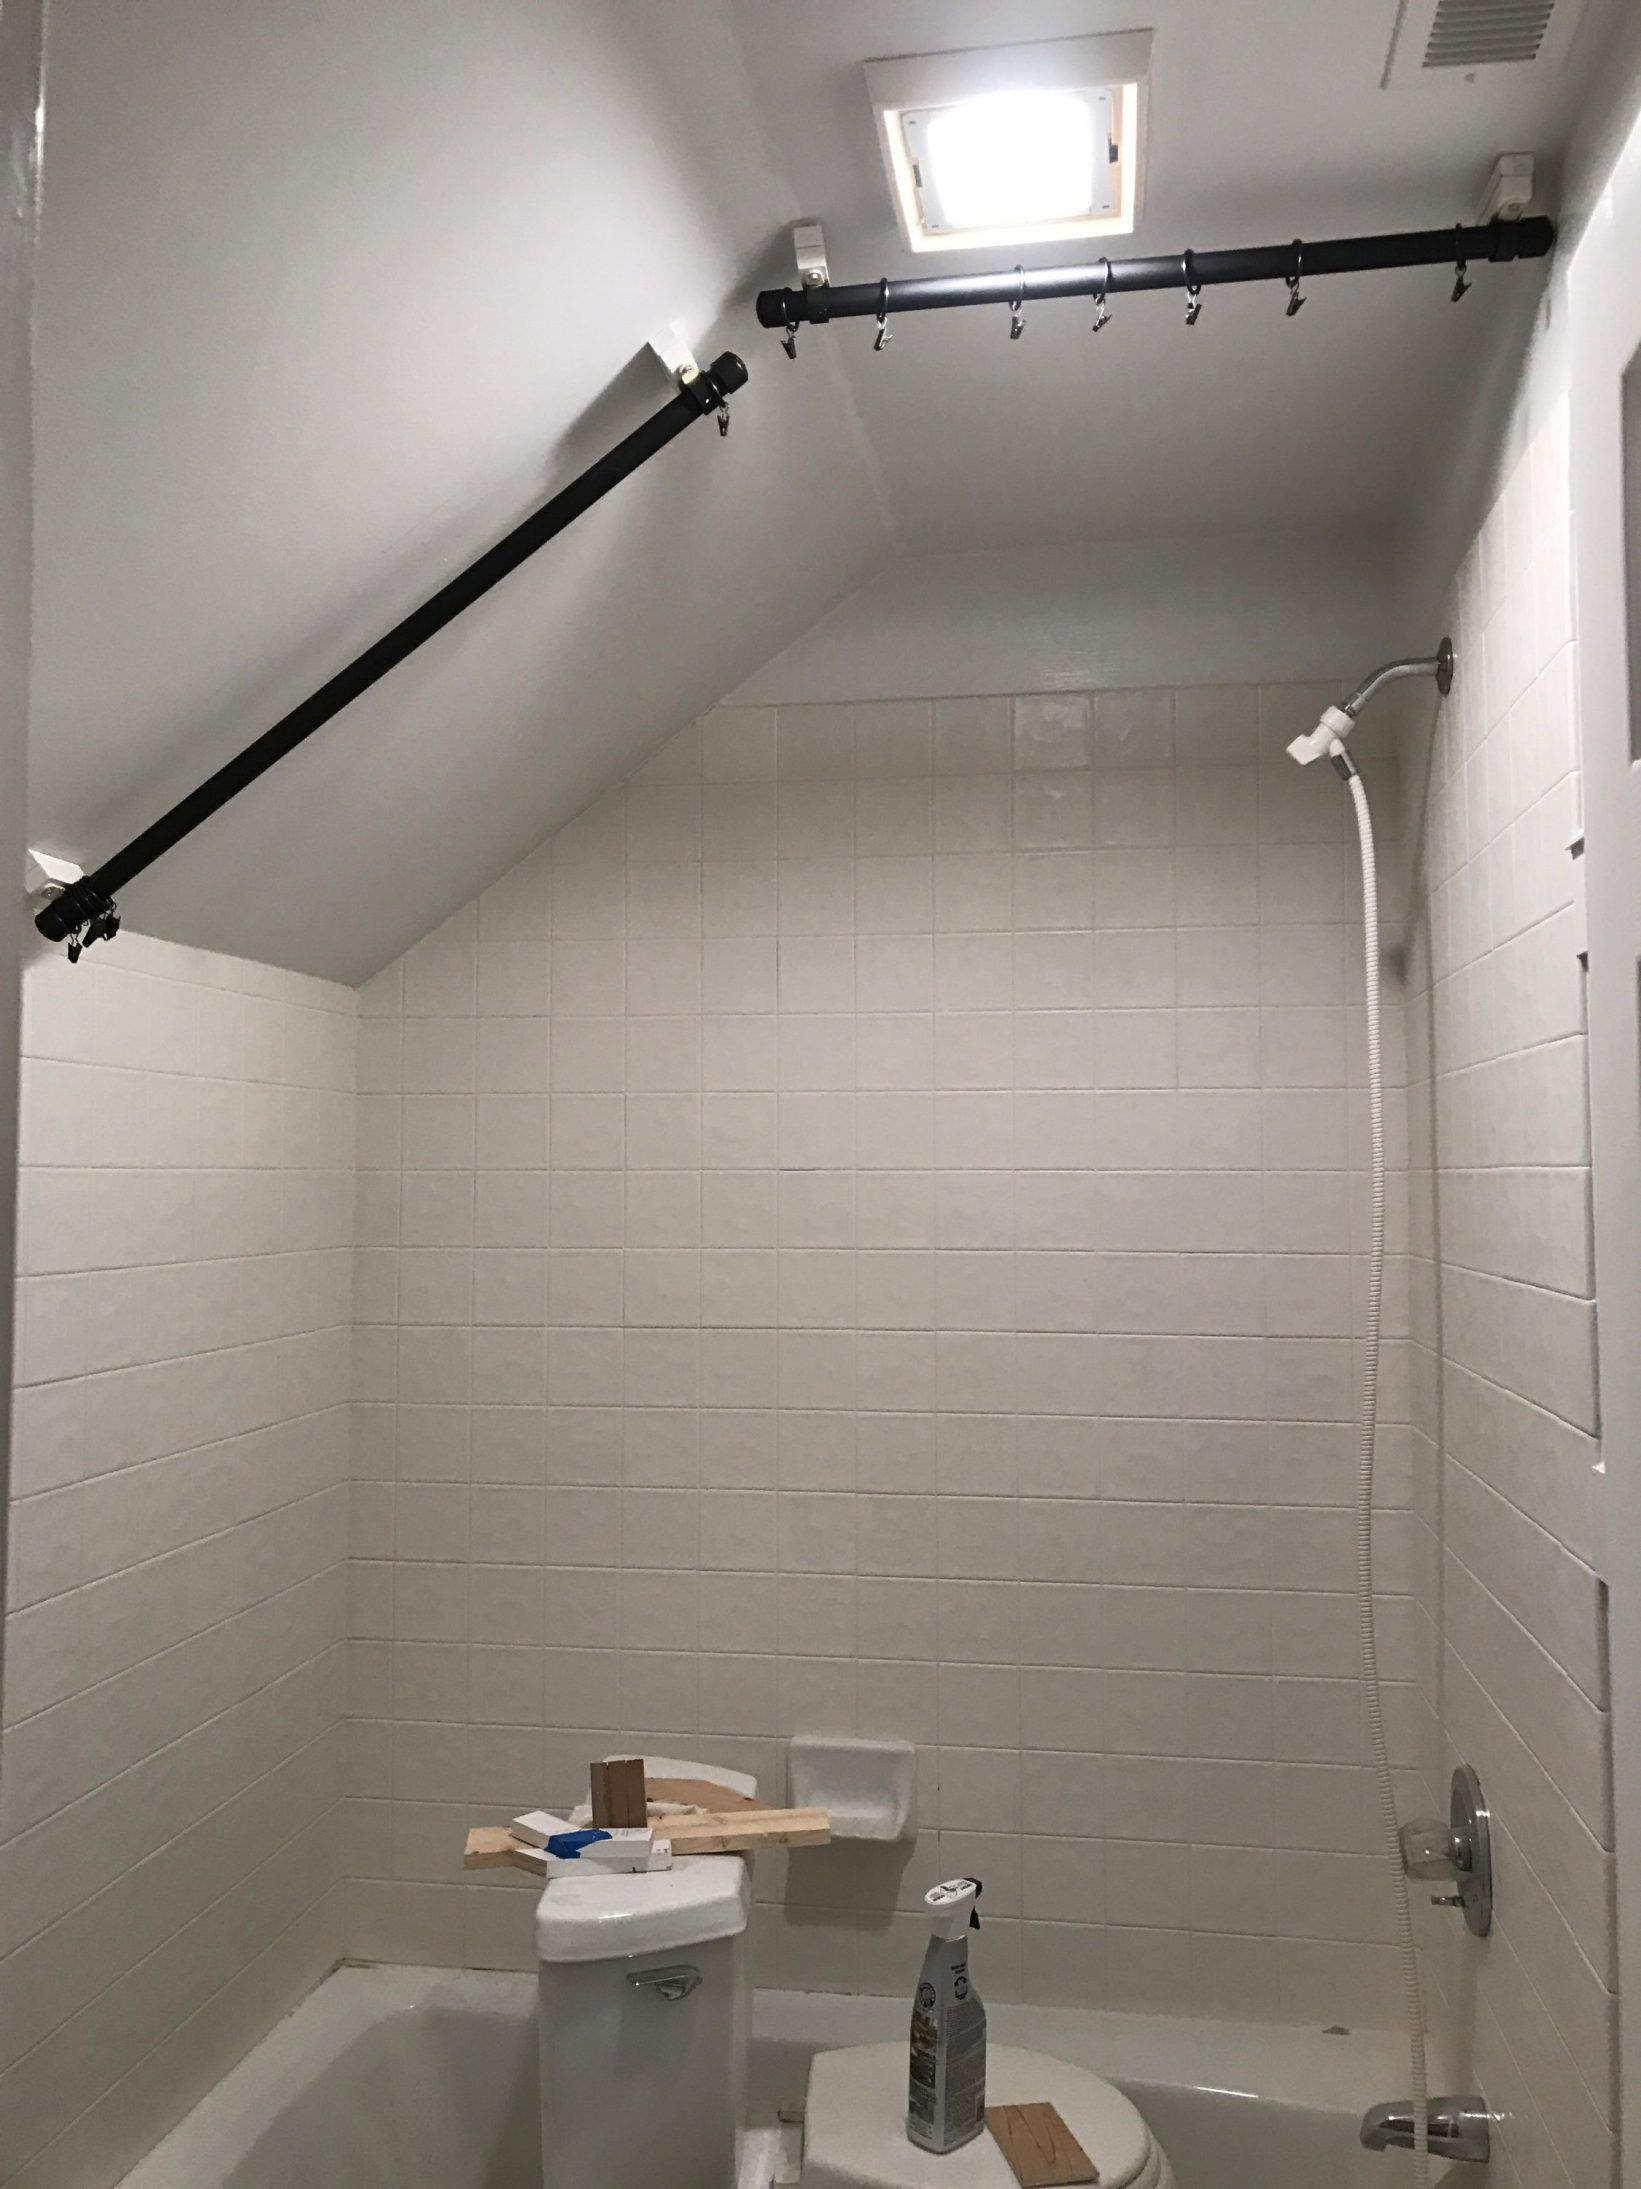 Diy Angled Ceiling Shower Curtain Rod Ambler Harmon Diy Shower